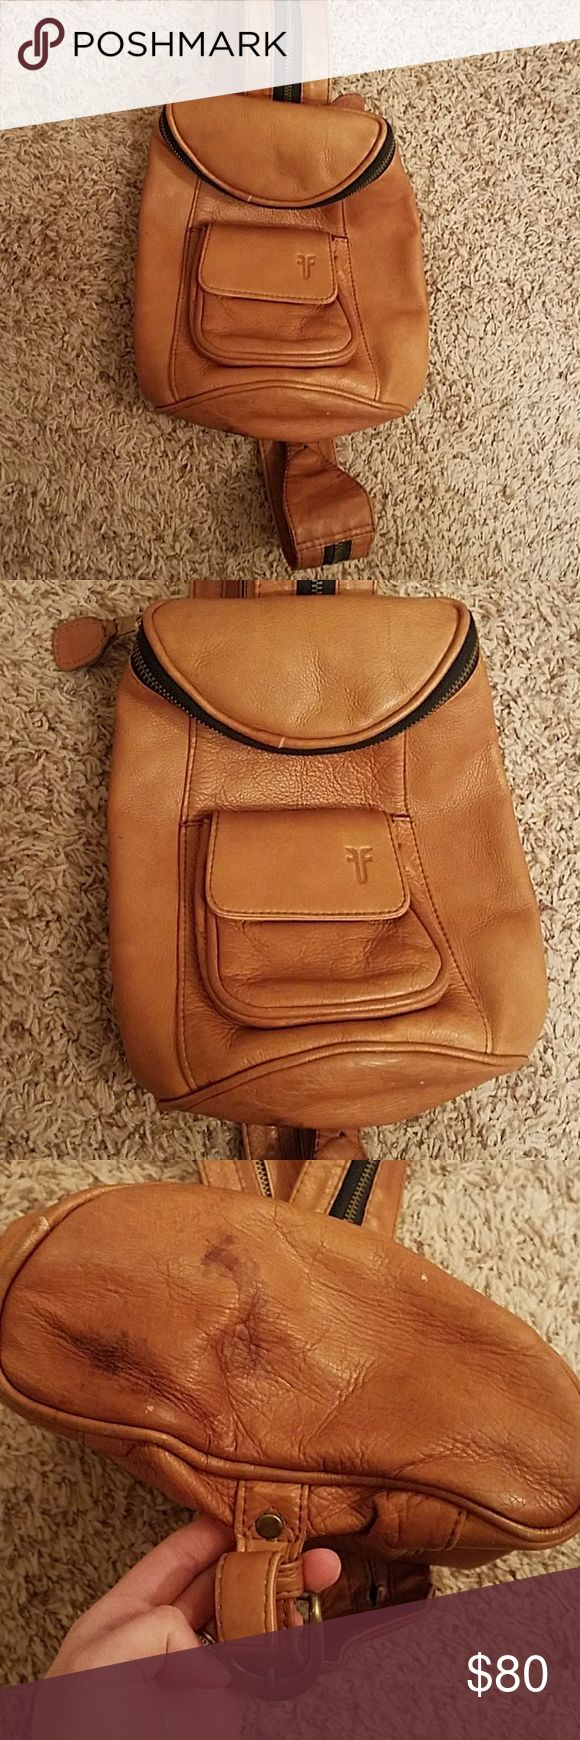 Vintage Frye Leather Mini Convertible Backpack Tan leather convertible backpack. Can be worn over one shoulder or zipped down the center of the strap to make a two shoulder backpack. Small button pouch on the front. Small zipper pouch attached inside. Worn and loved condition but with leather it looks beautiful! Perfect for summer music festivals! Some small imperfections, tried to picture as best I could. Frye Bags Backpacks